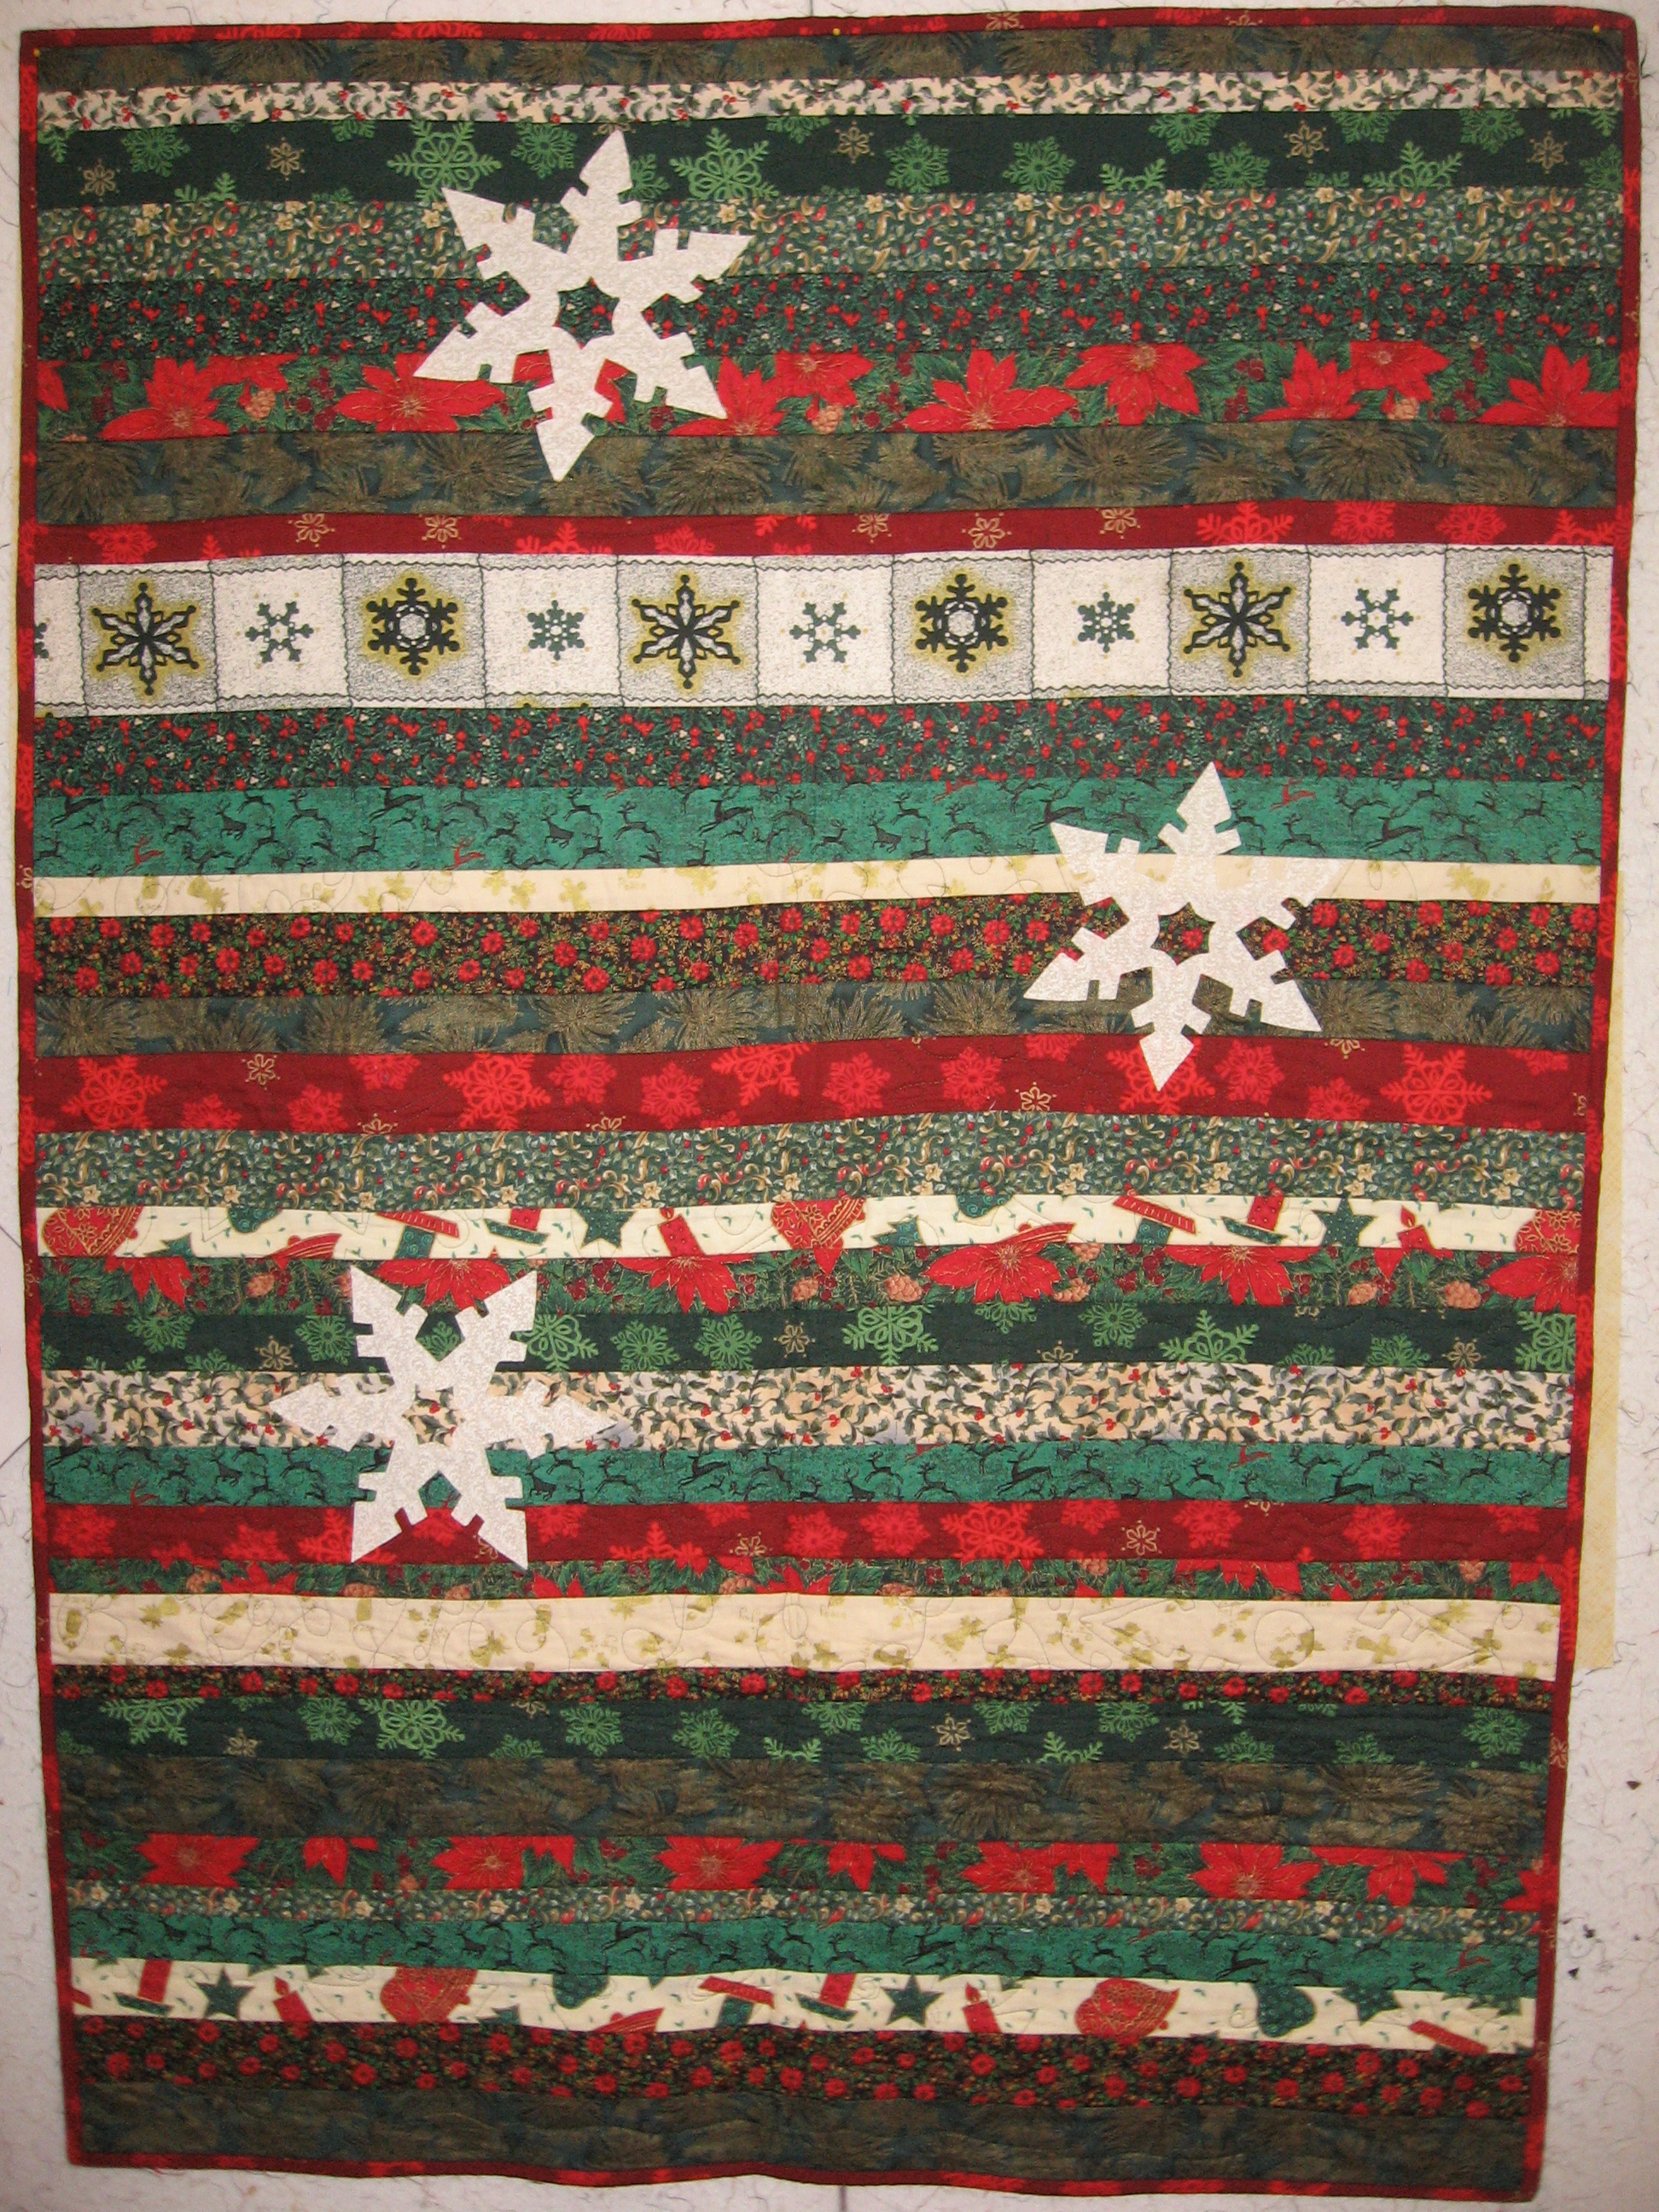 Lasagna Quilt Pattern Jelly Roll : Lasagna Pattern for Quilt and Tablerunner - Lyn Brown s Quilting Blog